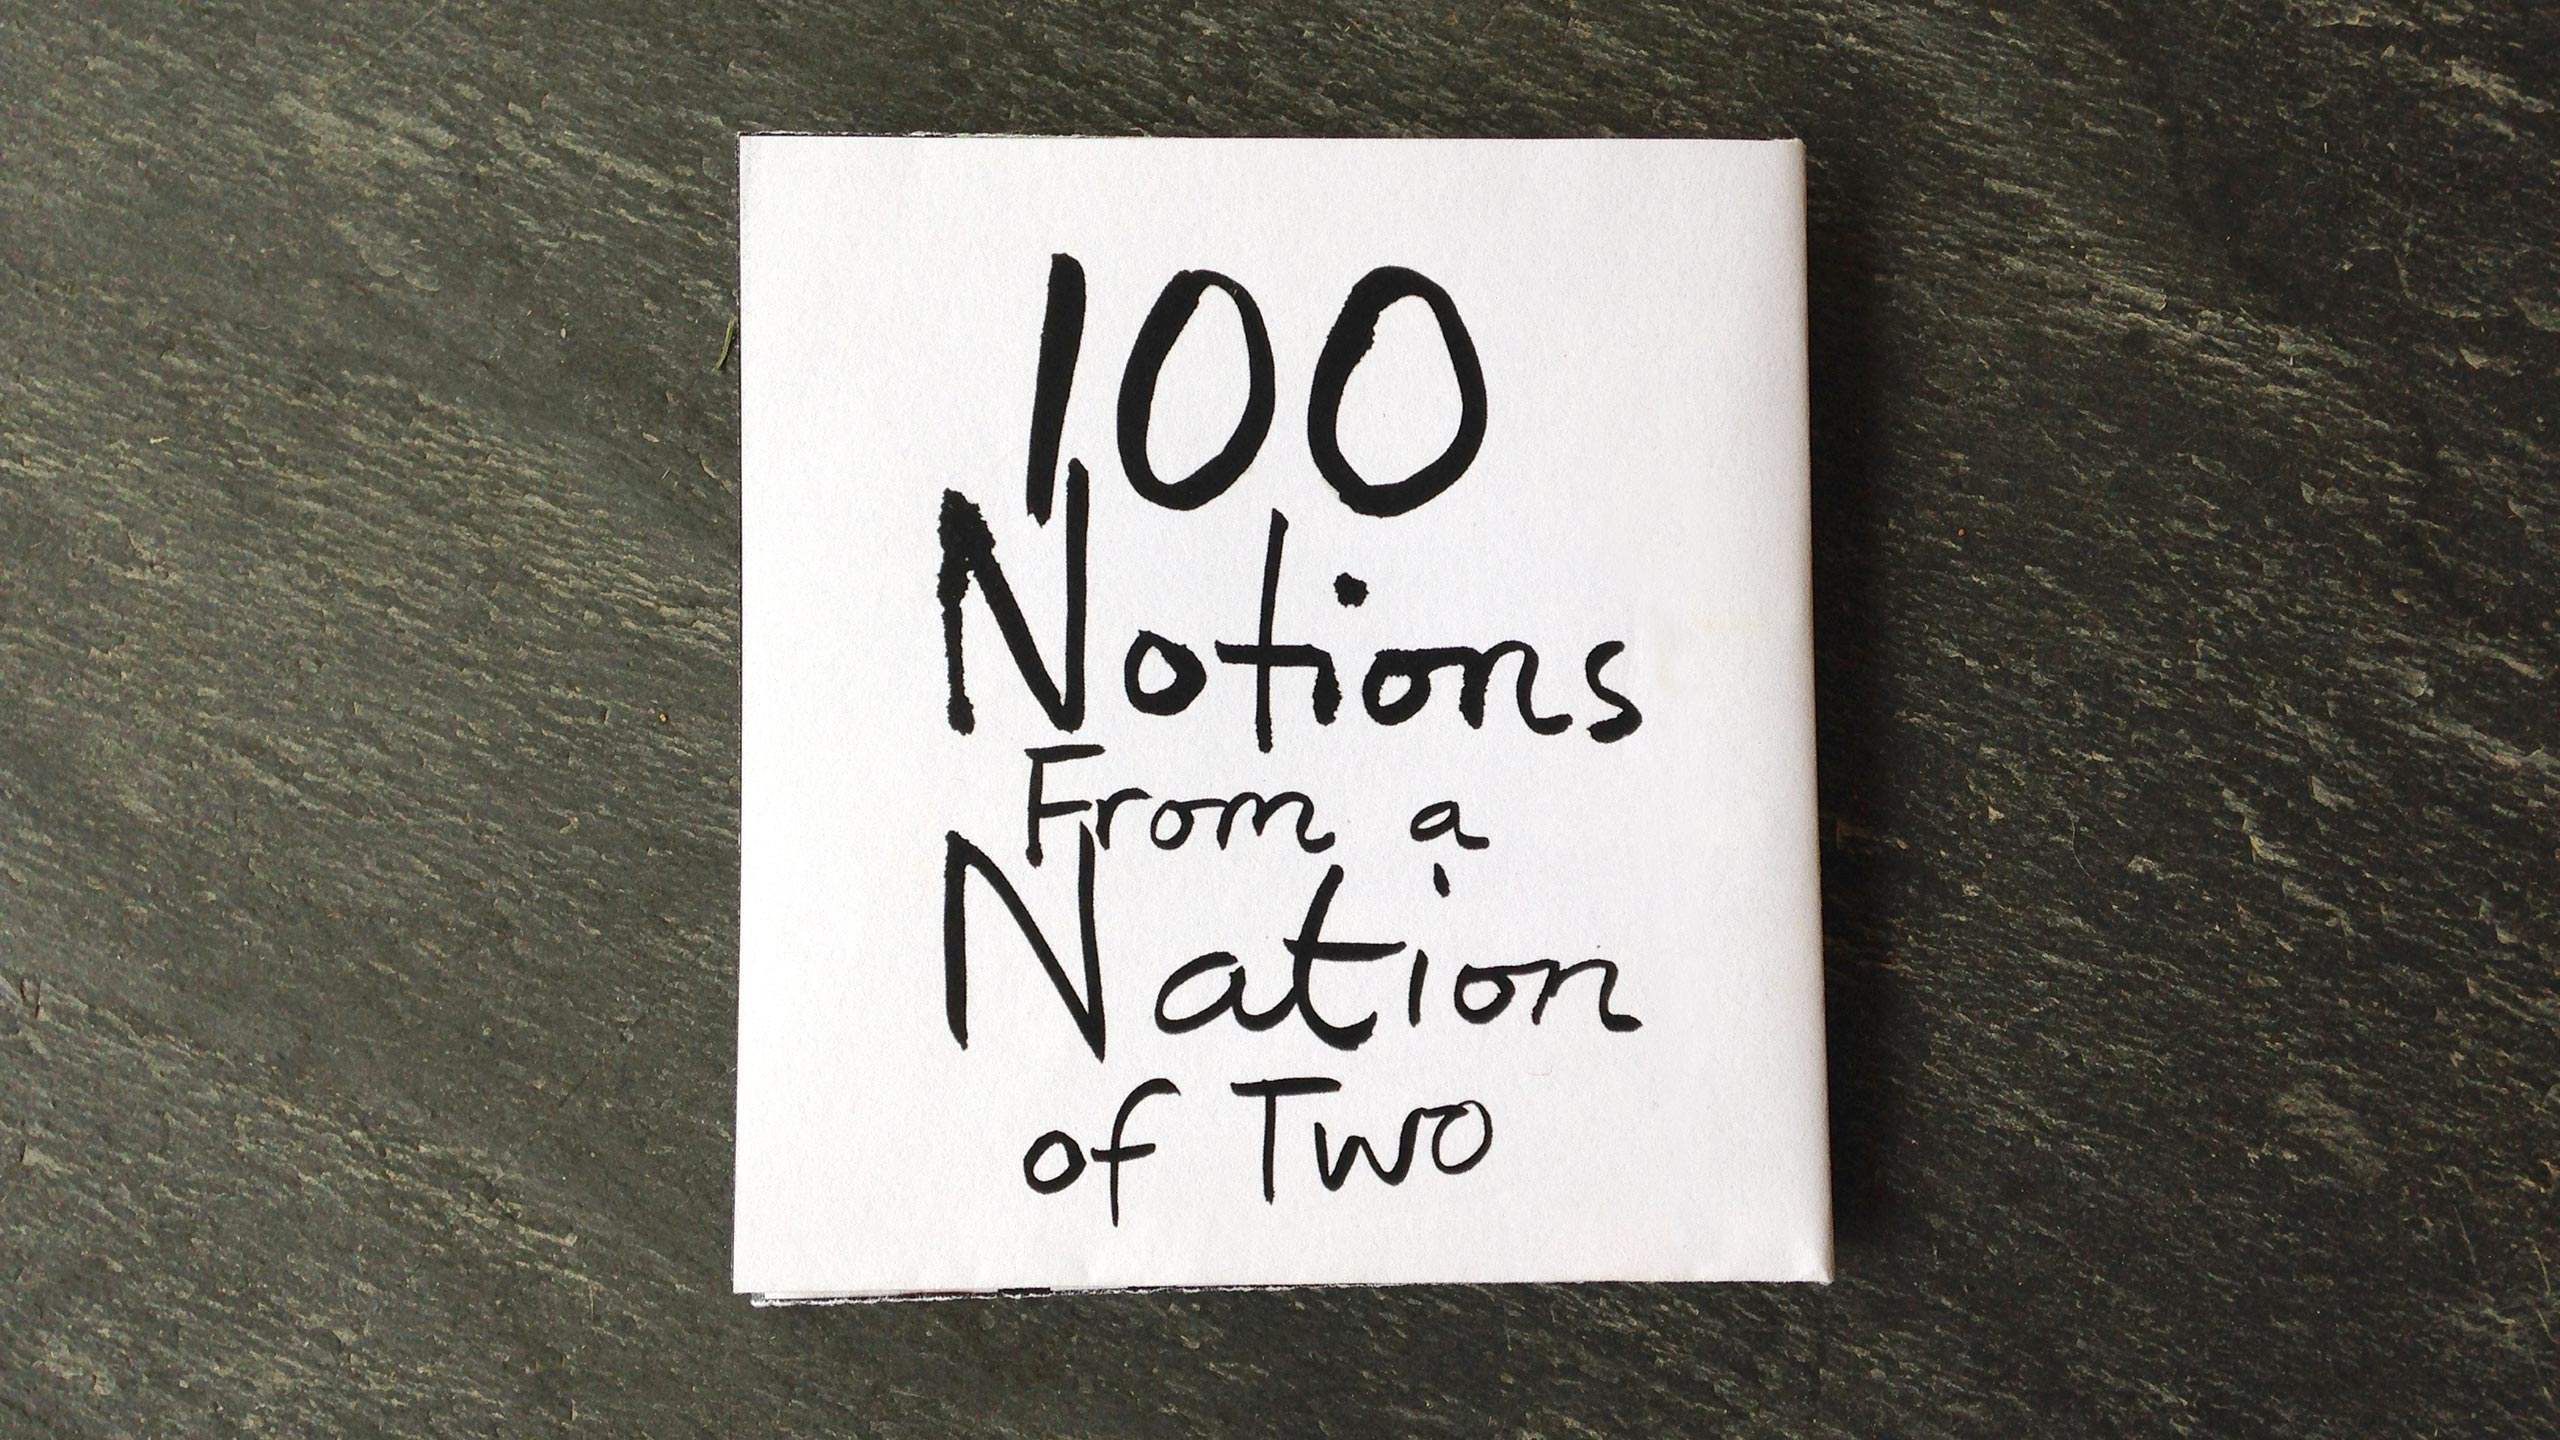 100 Notions From a Nation of Two